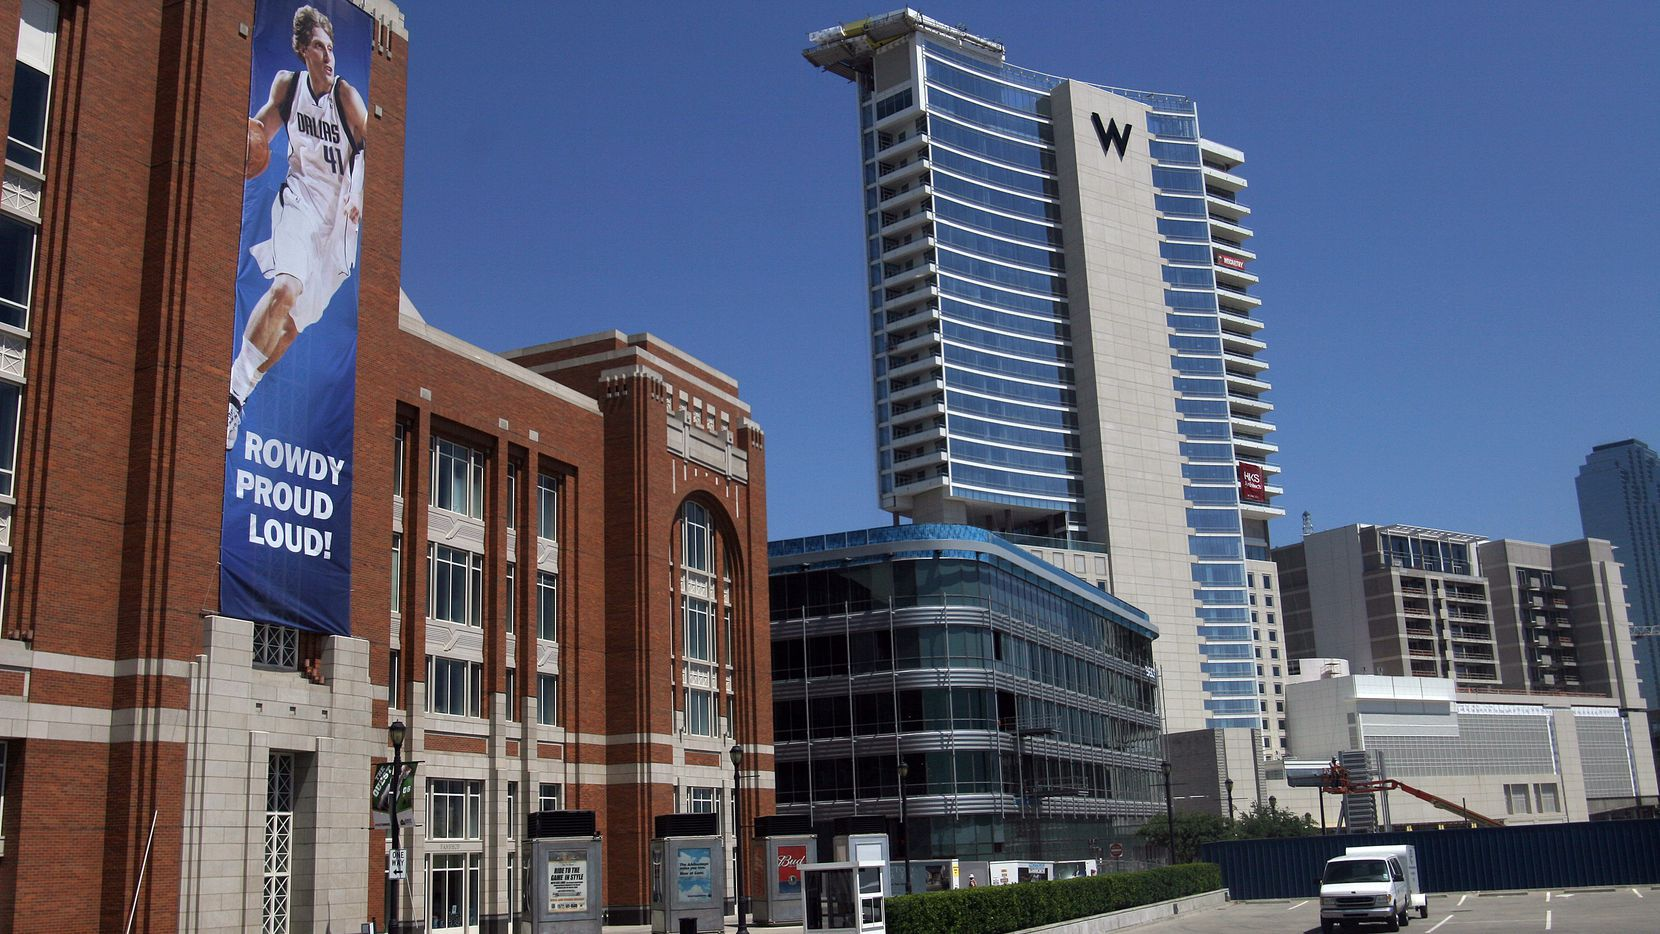 The W Hotel opened in Victory Park in 2006.